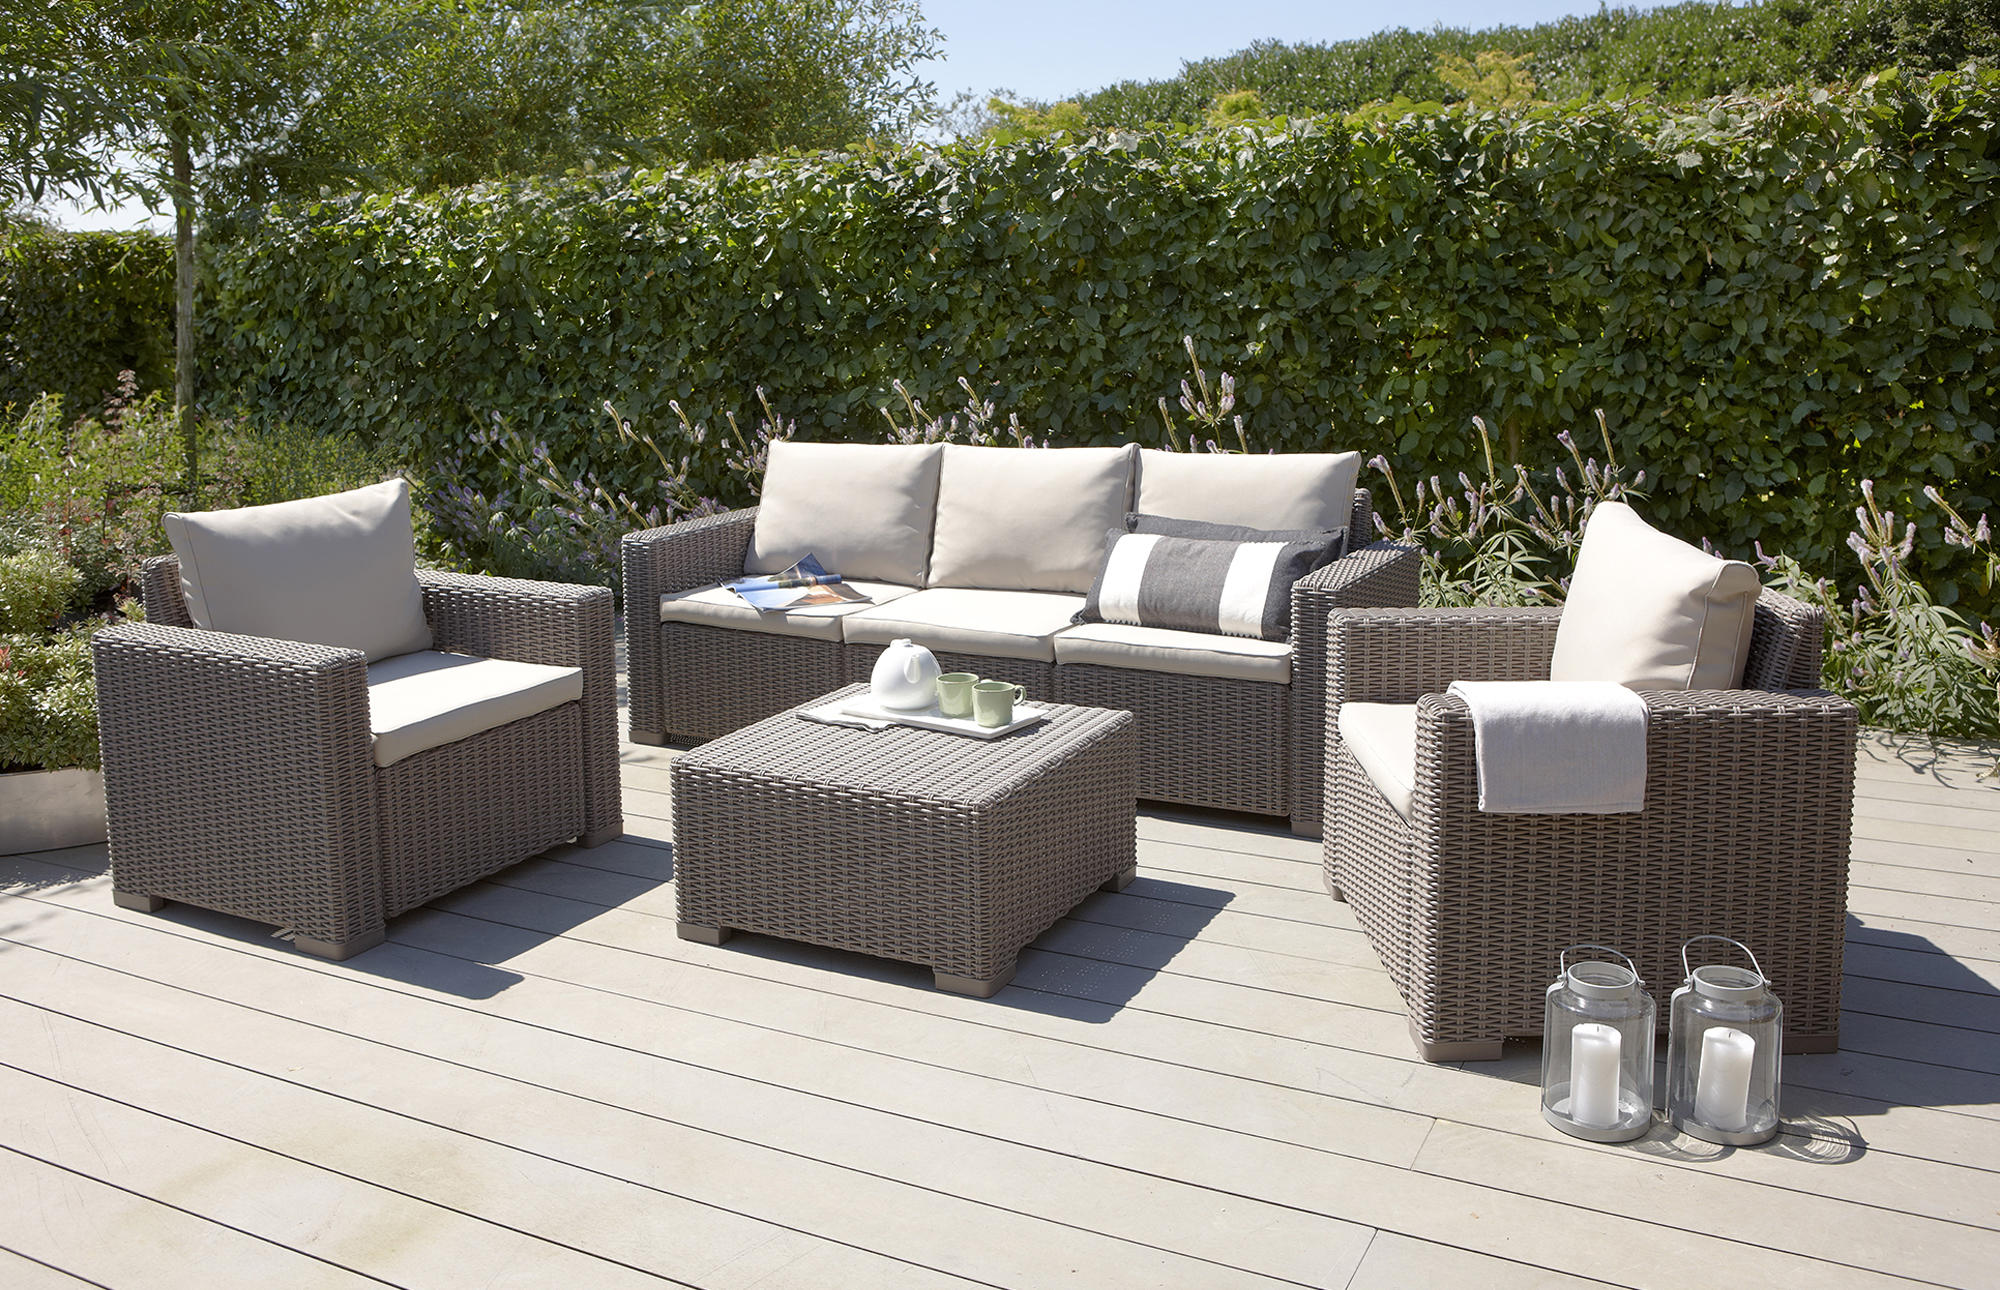 outdoor wicker furniture photo - 5